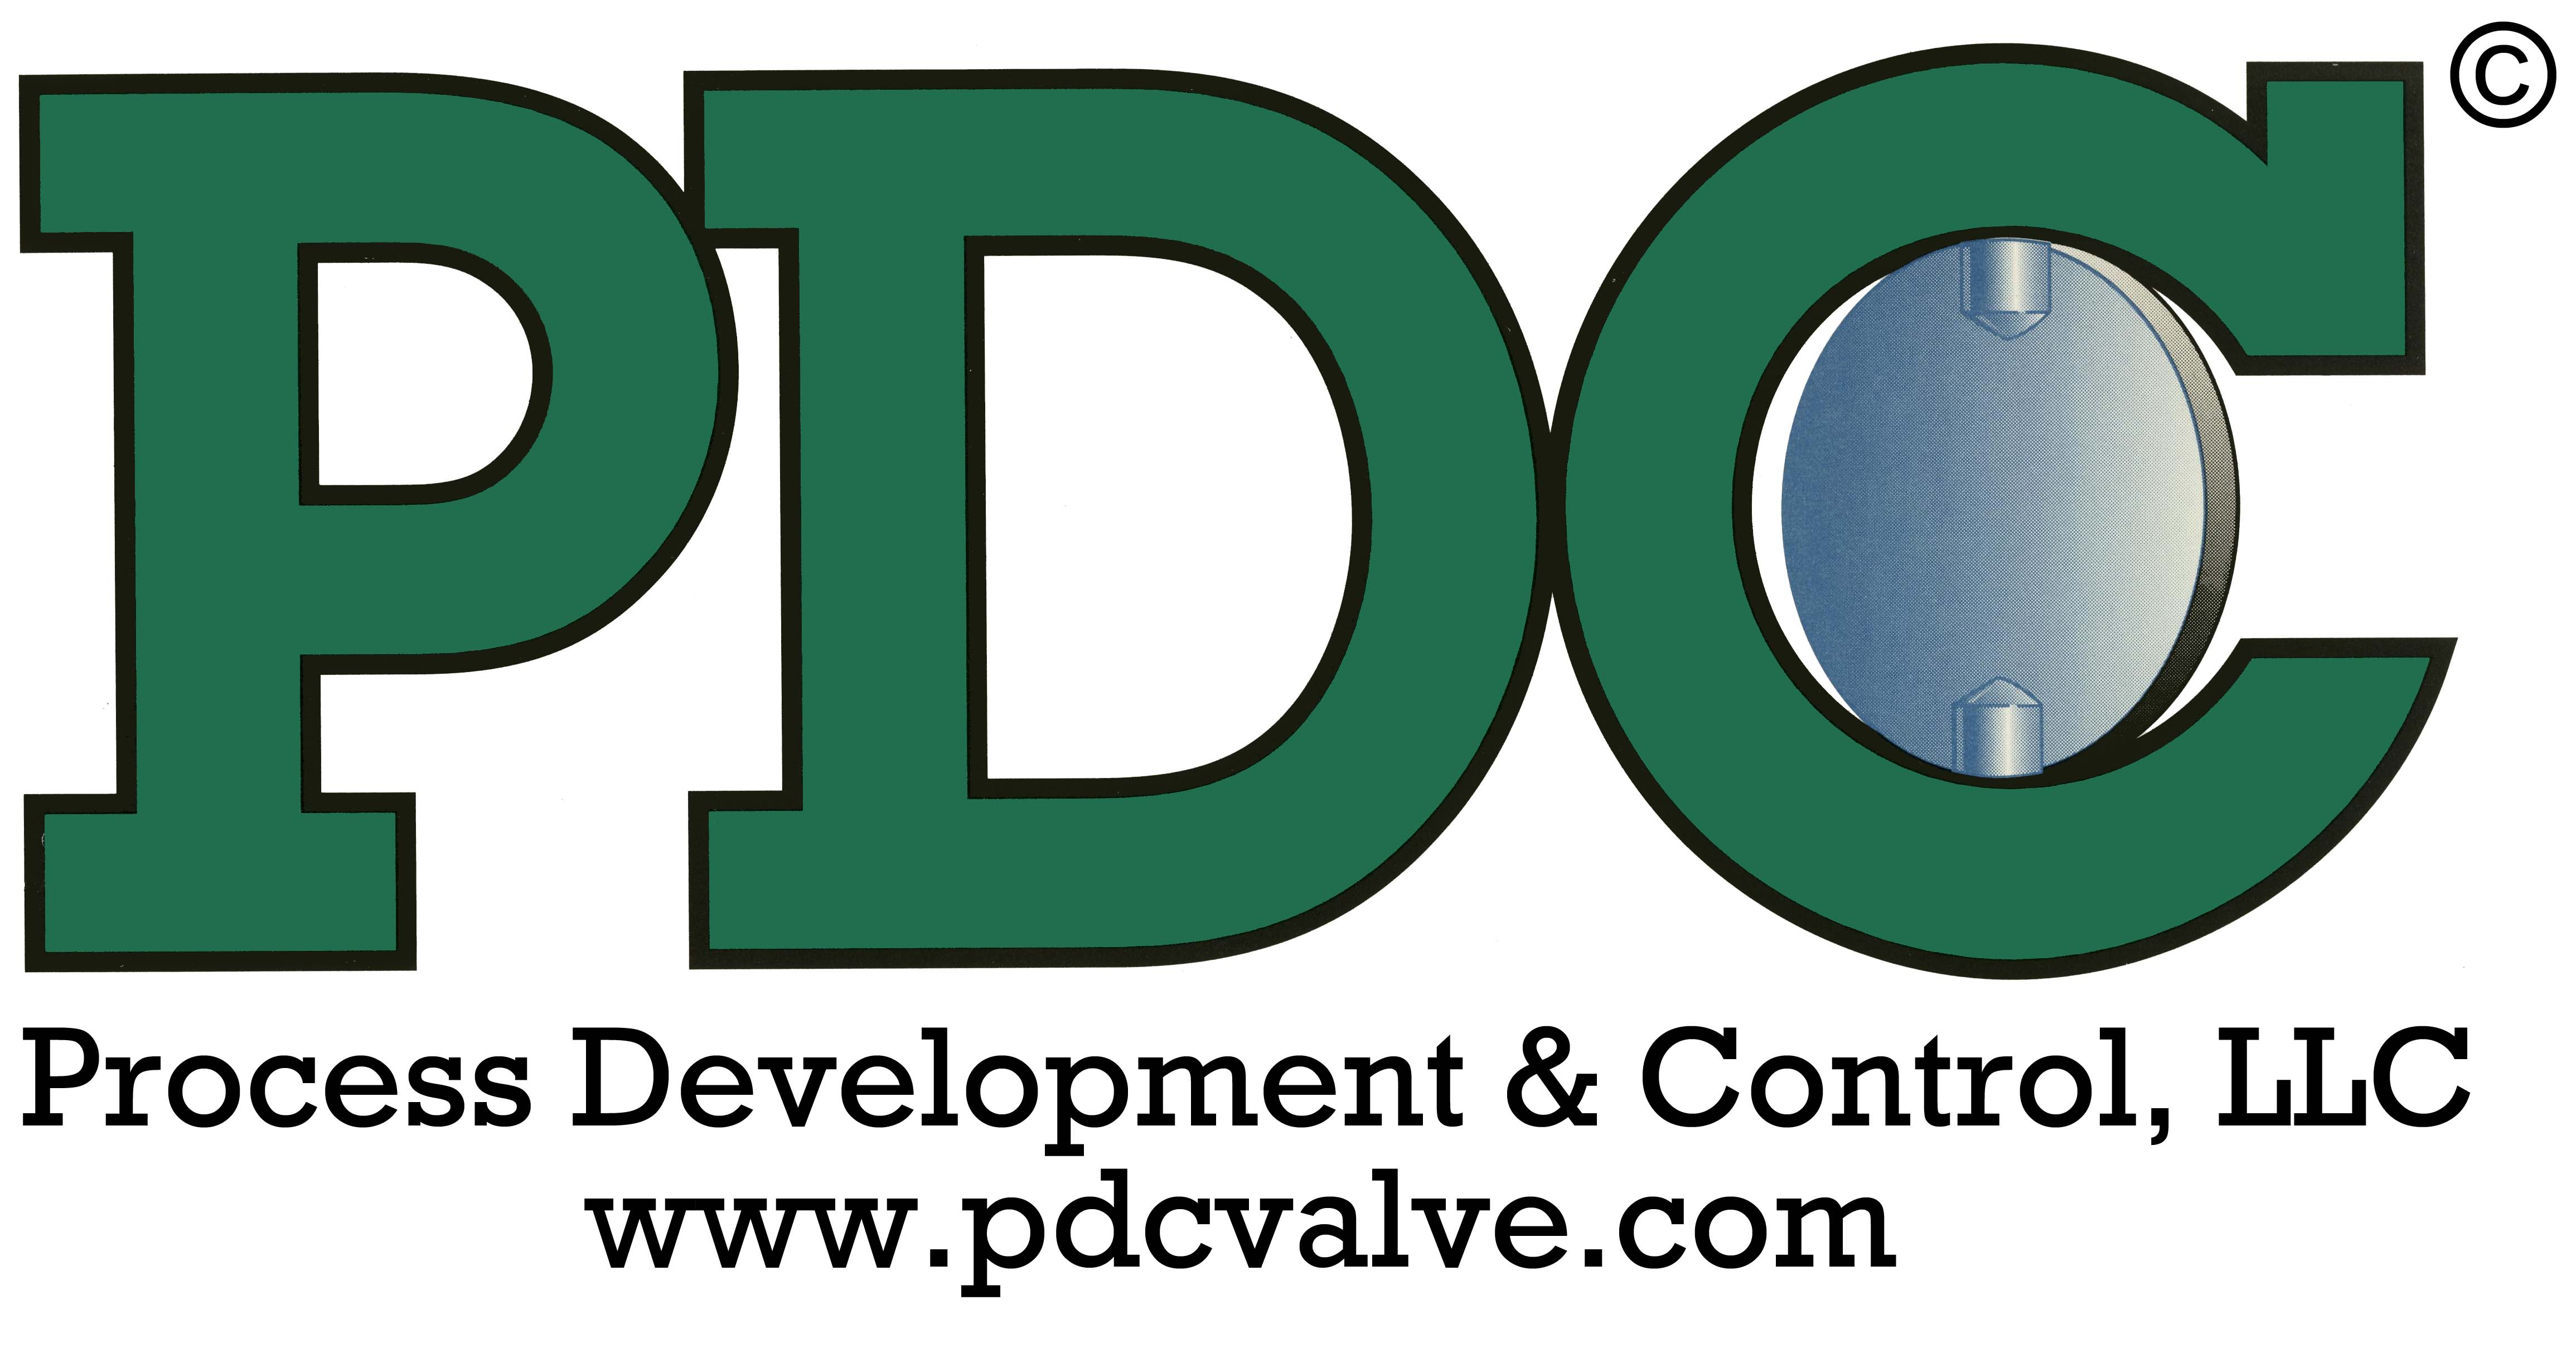 PDC LLC announces expansion of Butterfly Valve product line